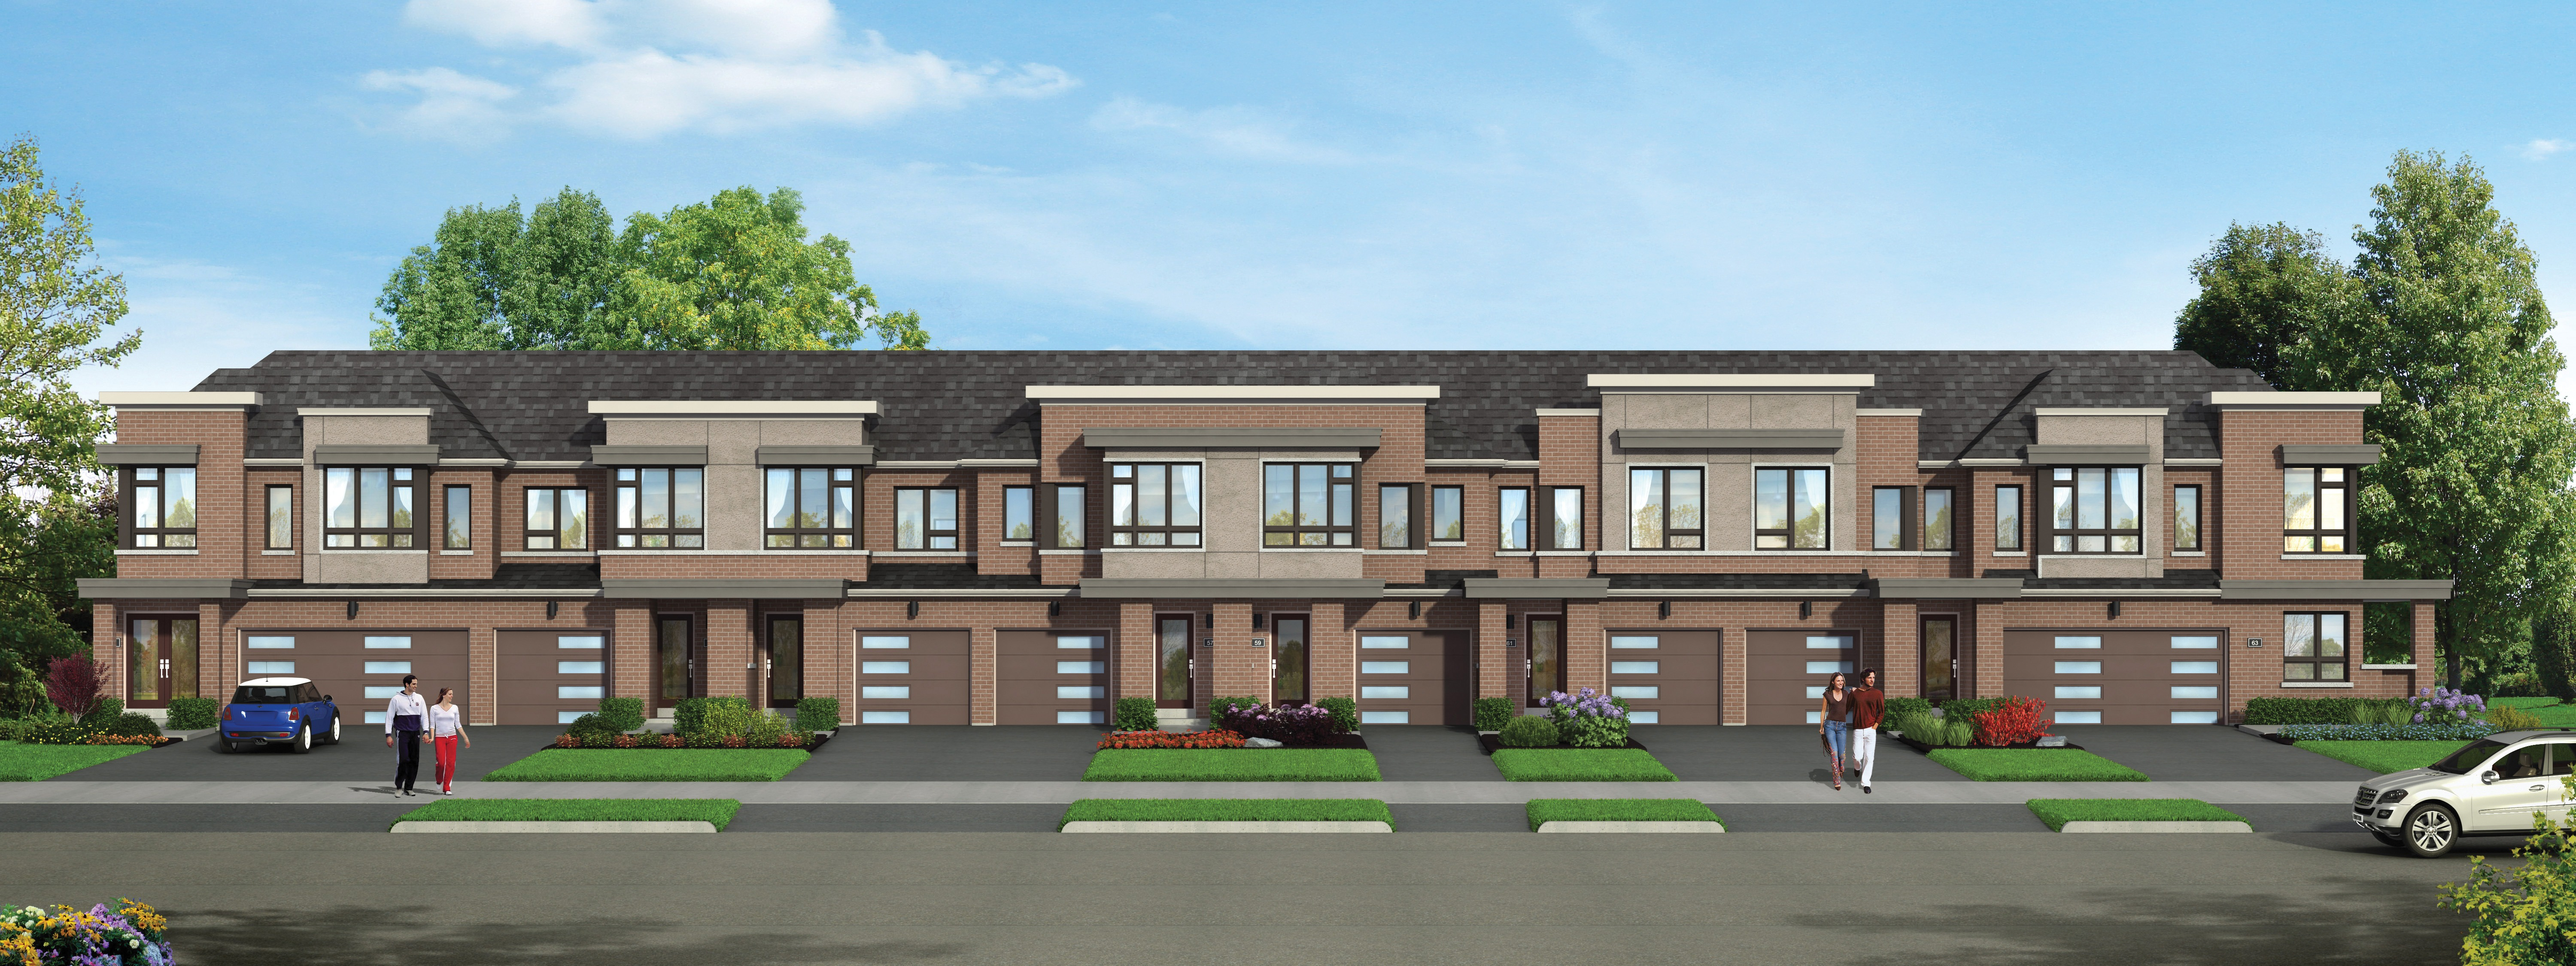 Lakebreeze Reflection Town A - Homes For Sale